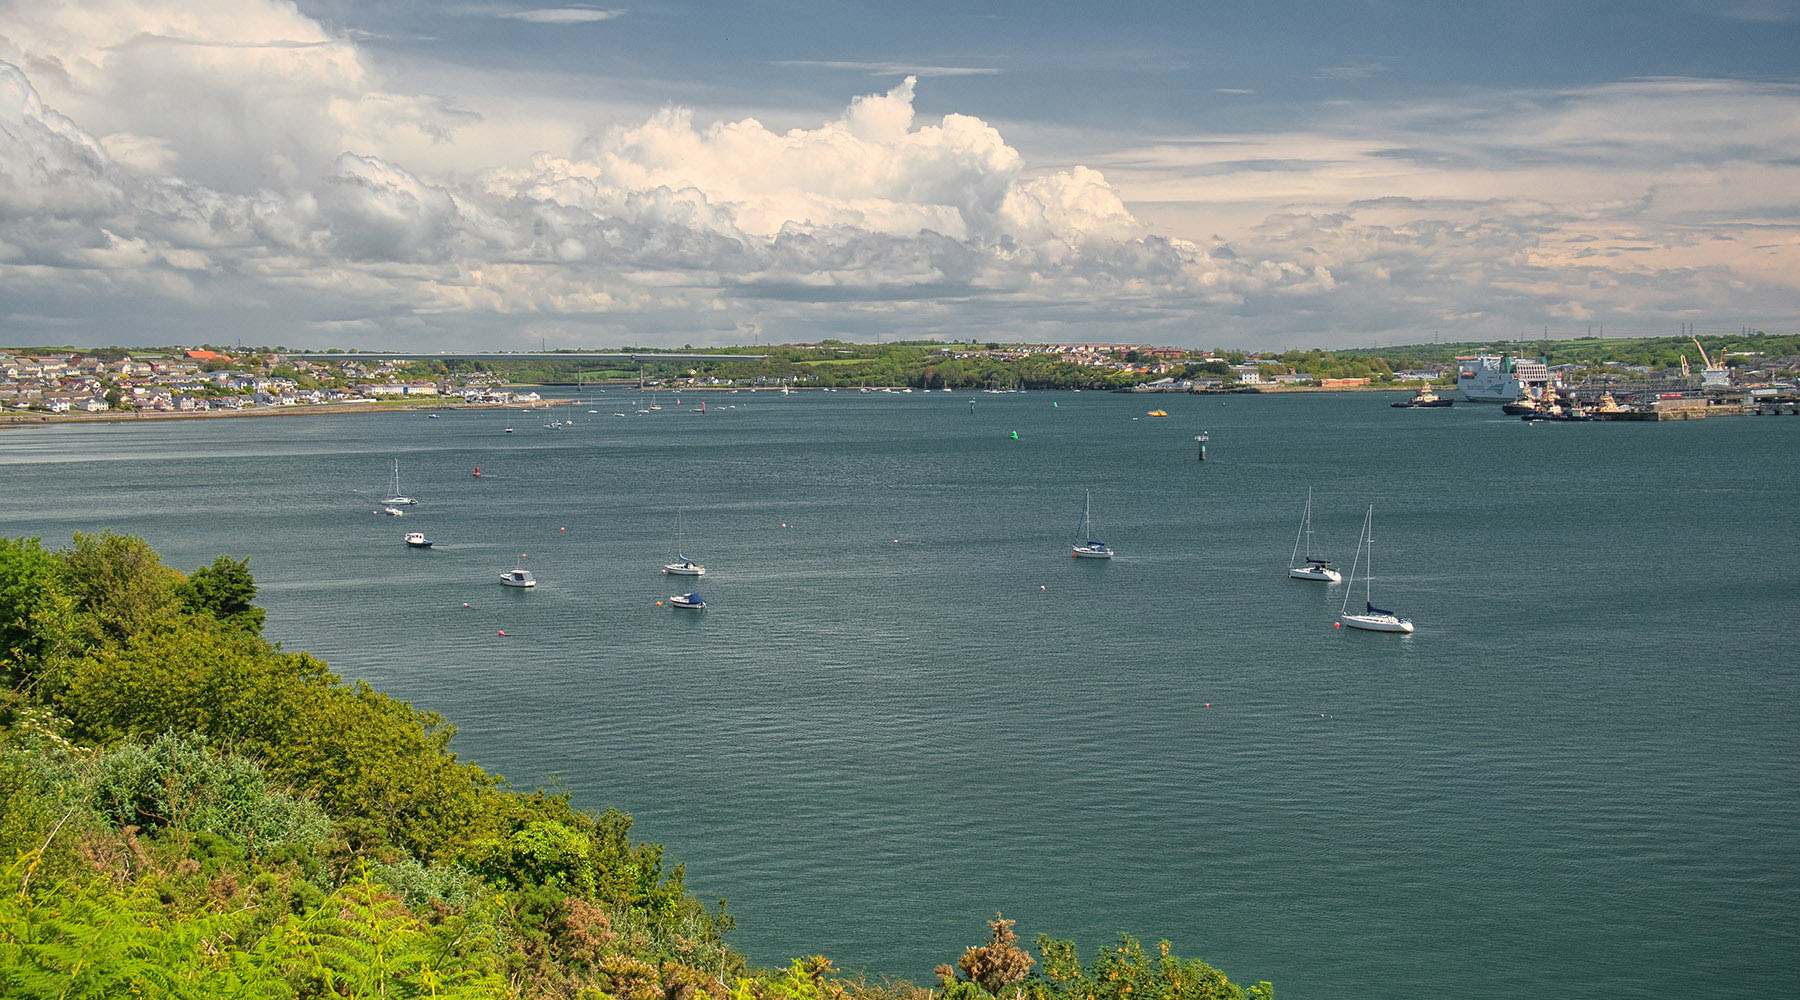 Milford Haven, Wales